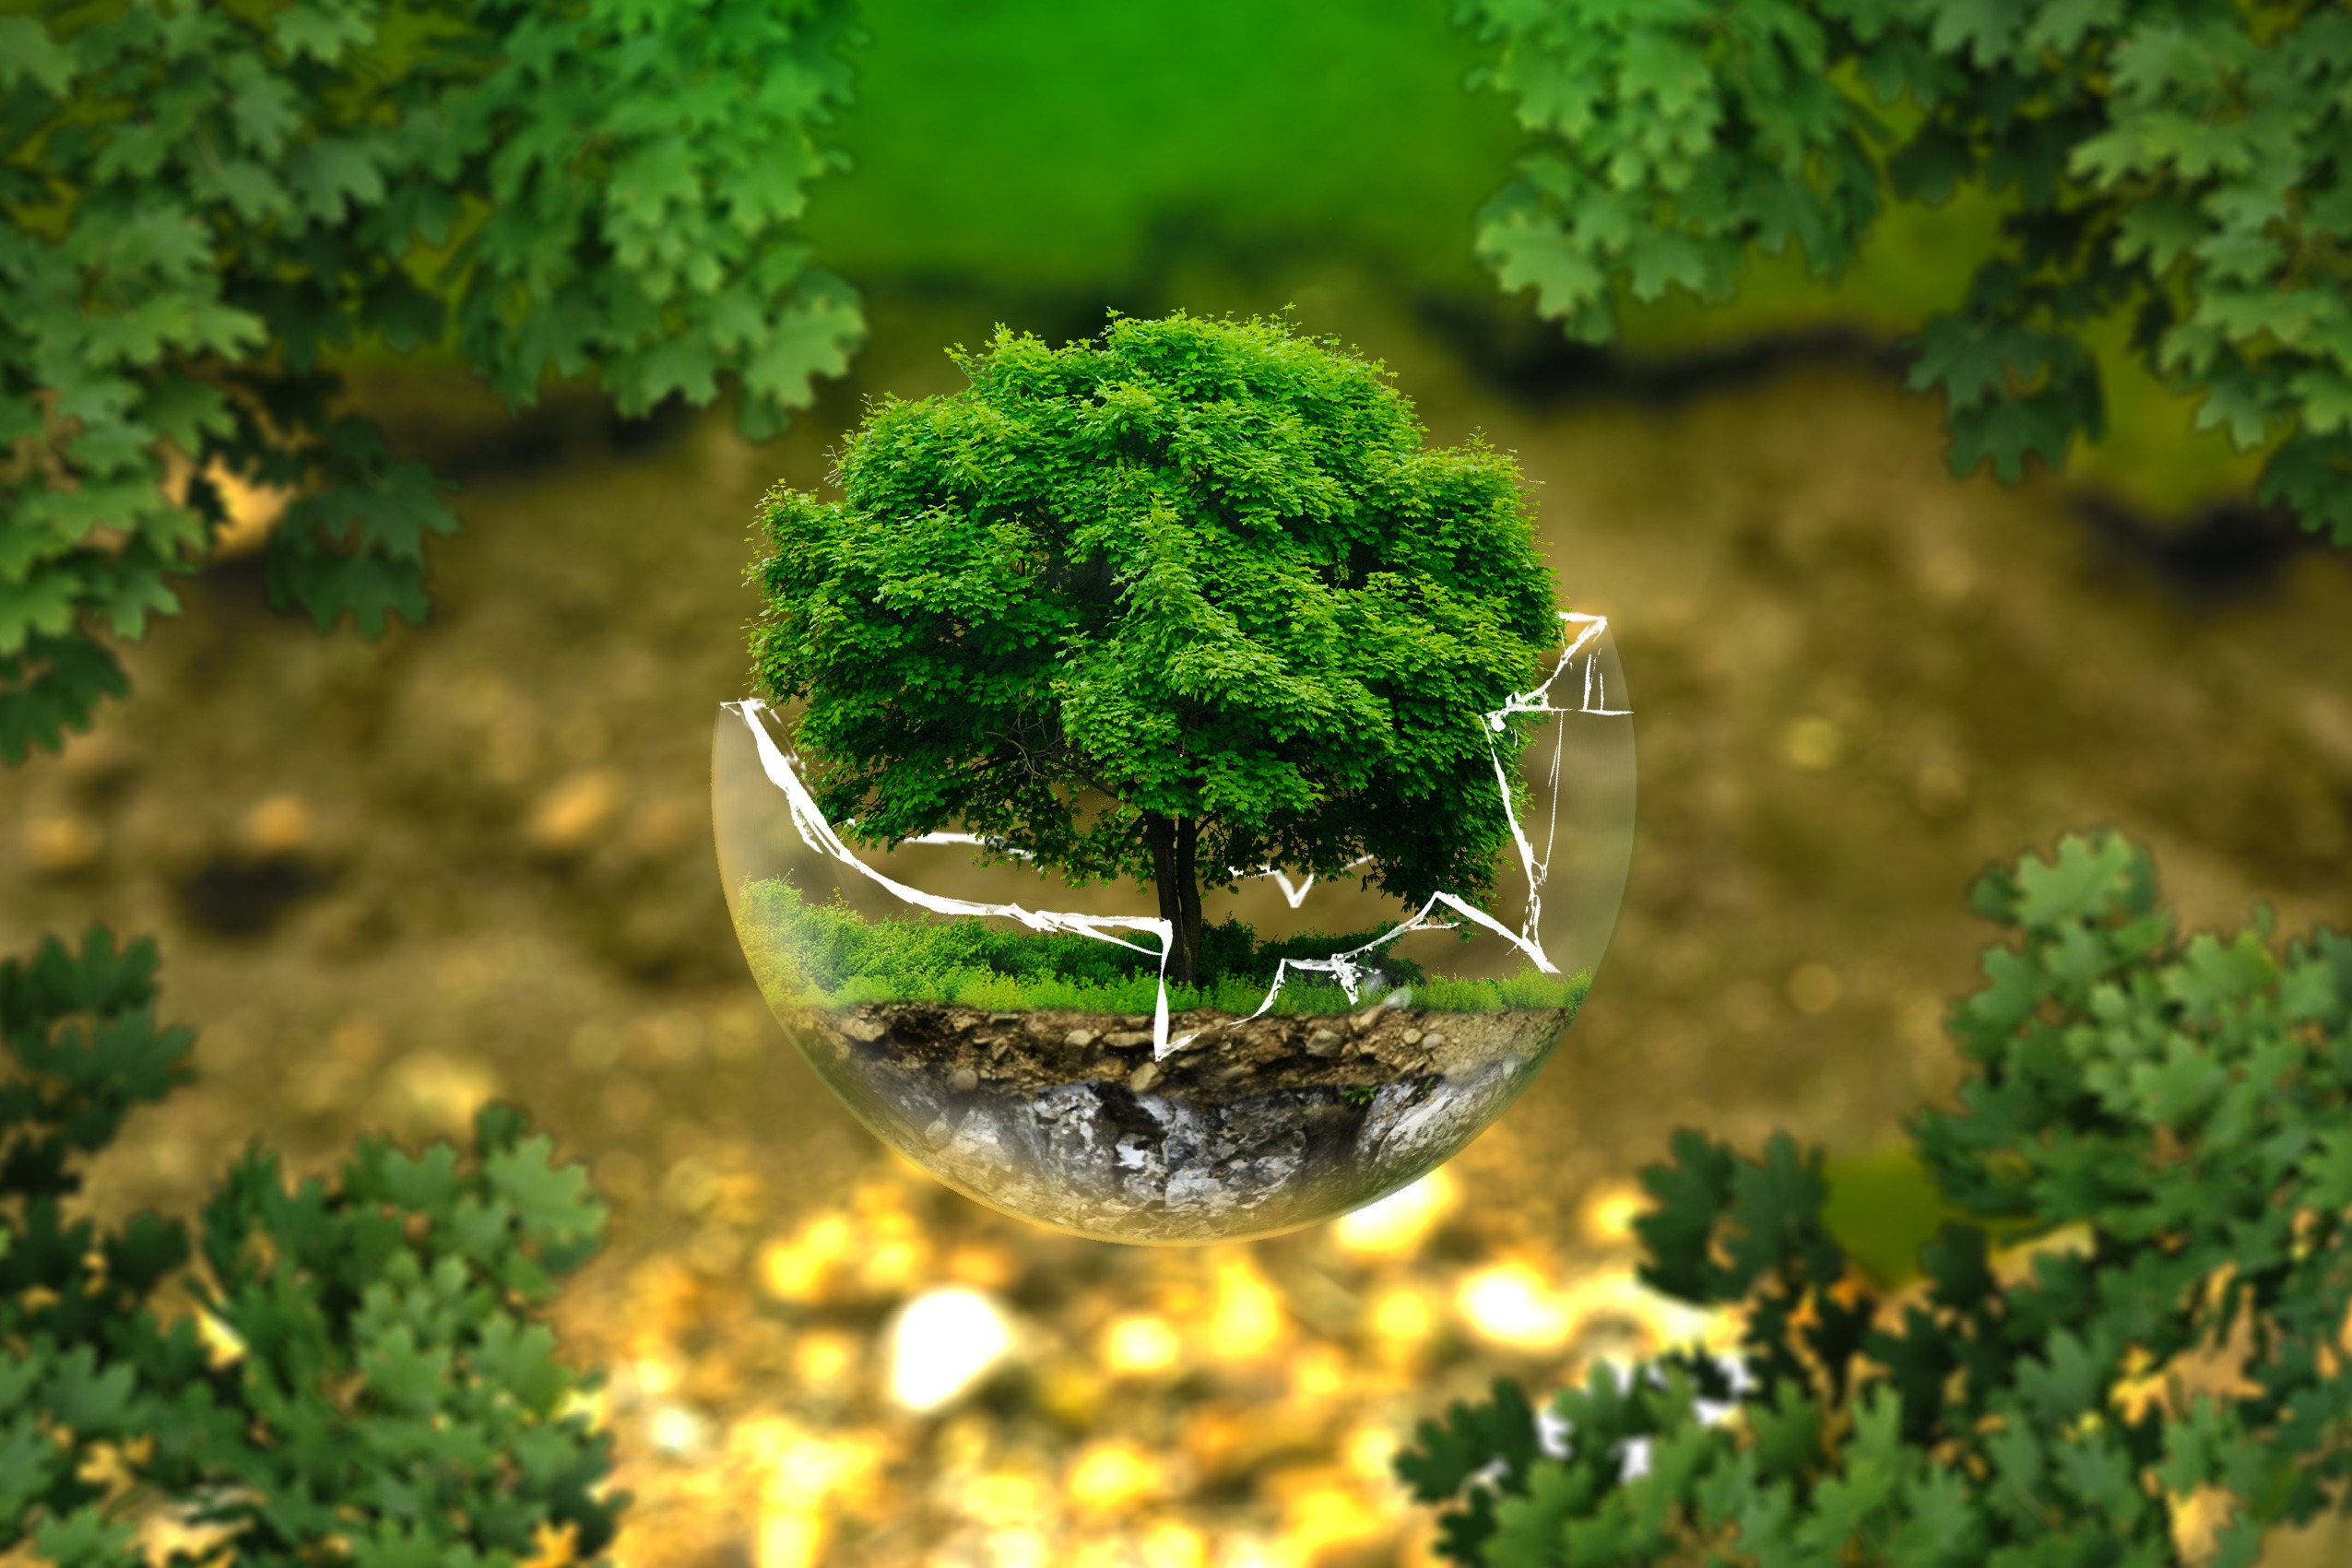 ecology organic pollution Define ecology: a branch of science concerned with the interrelationship of organisms and their environments — ecology in a sentence.